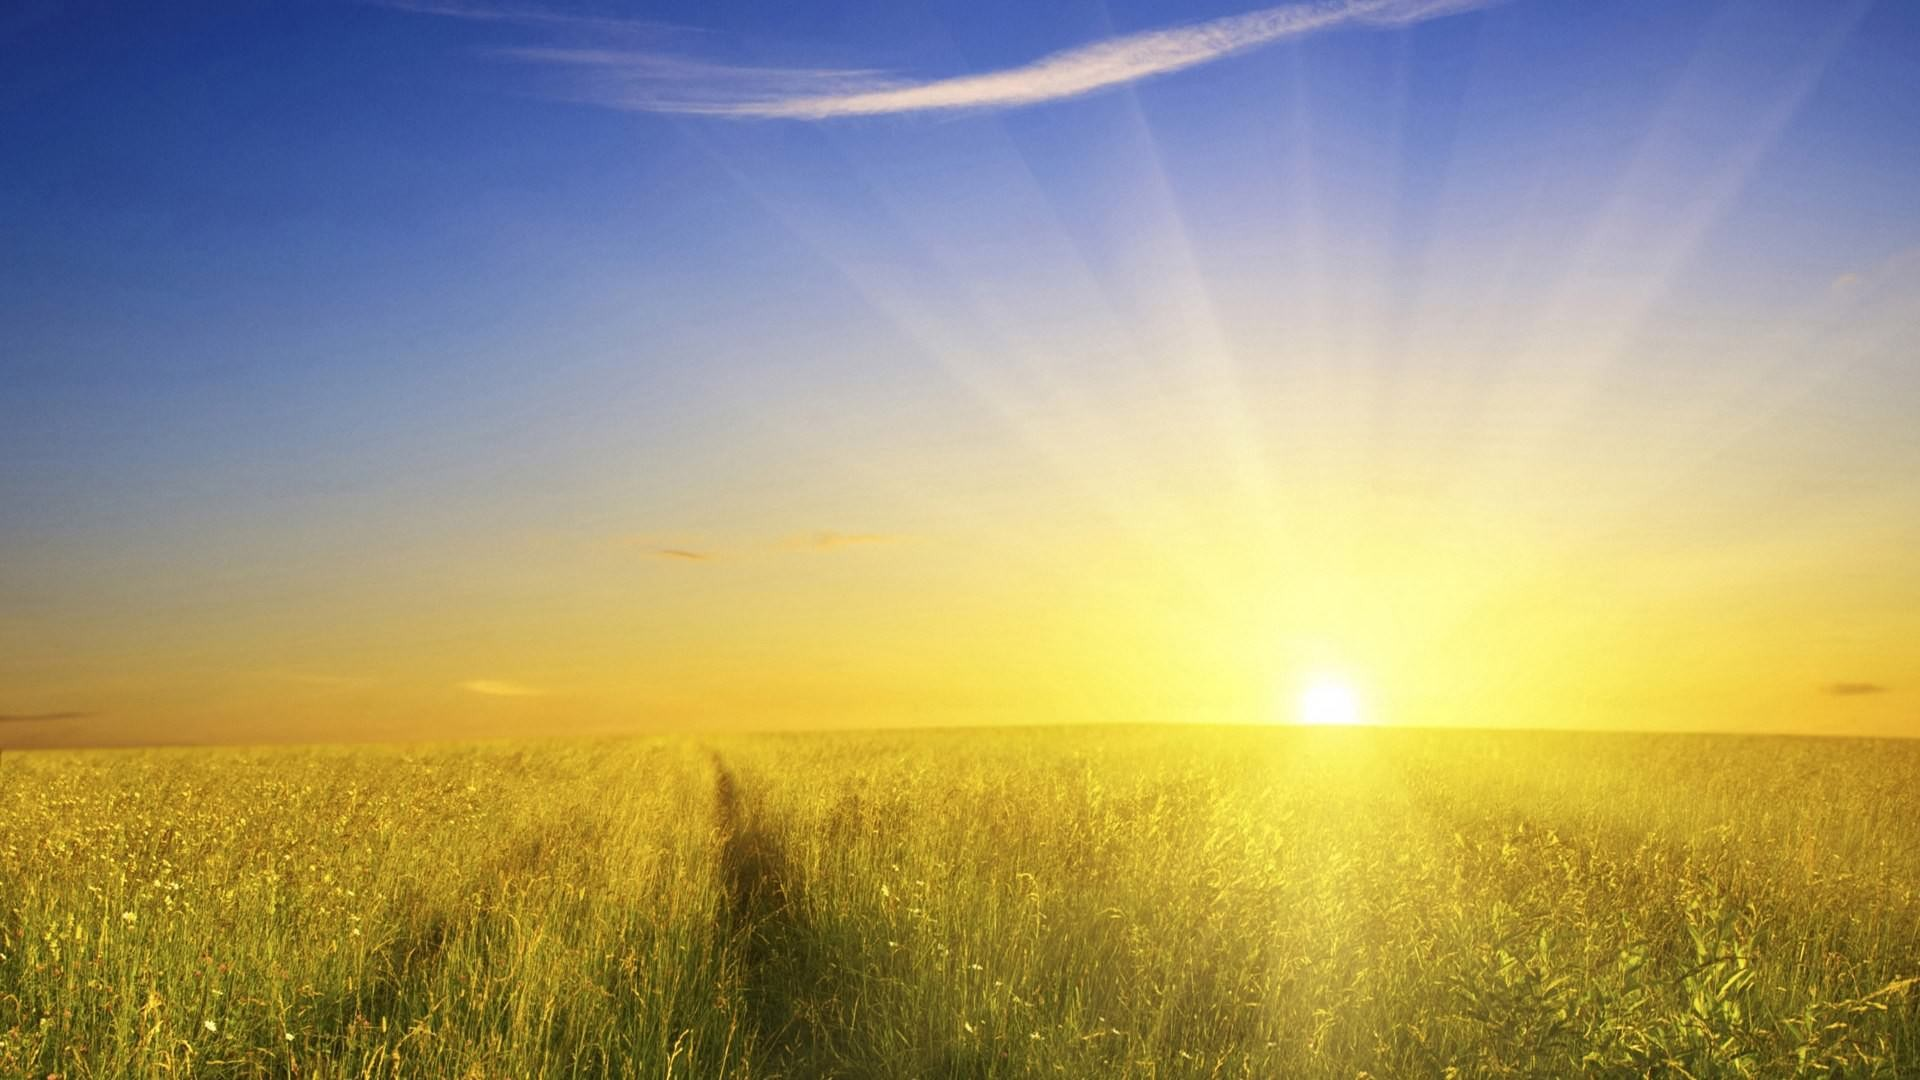 Nature Sunshine Galaxy S4 Wallpapers: Glory Wallpapers ·①